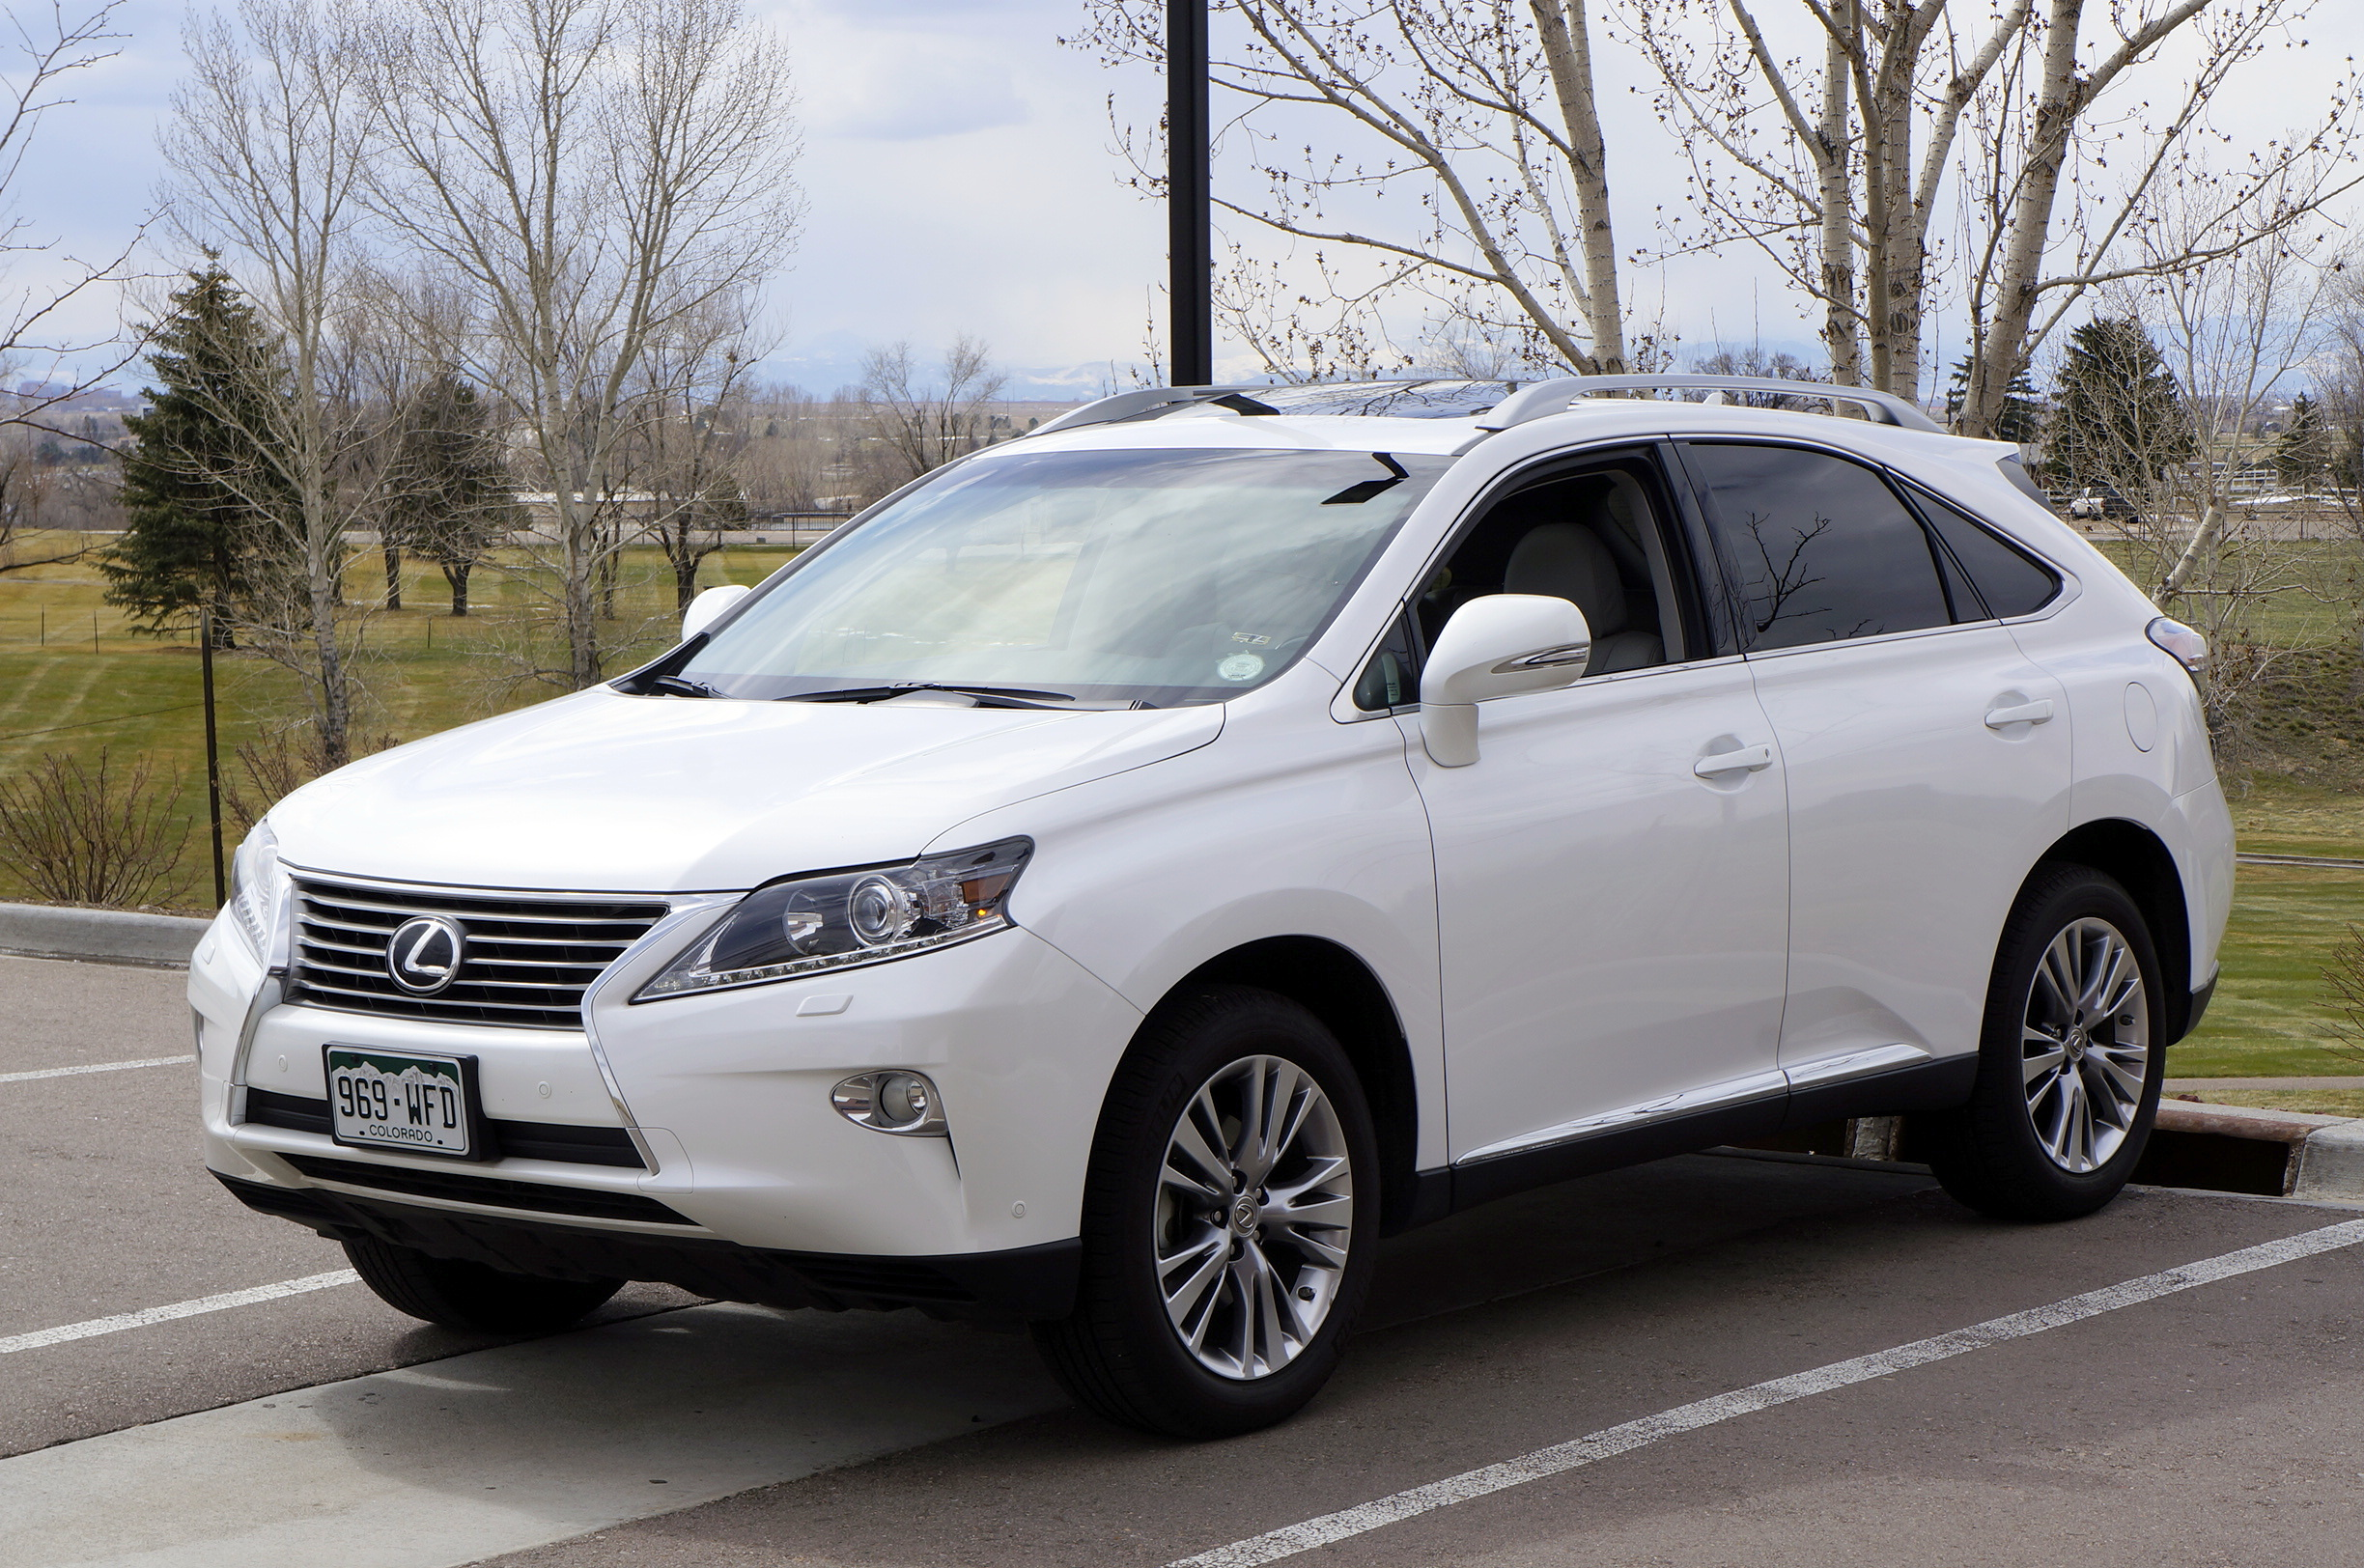 2013 Lexus RX 350 Information and photos ZombieDrive